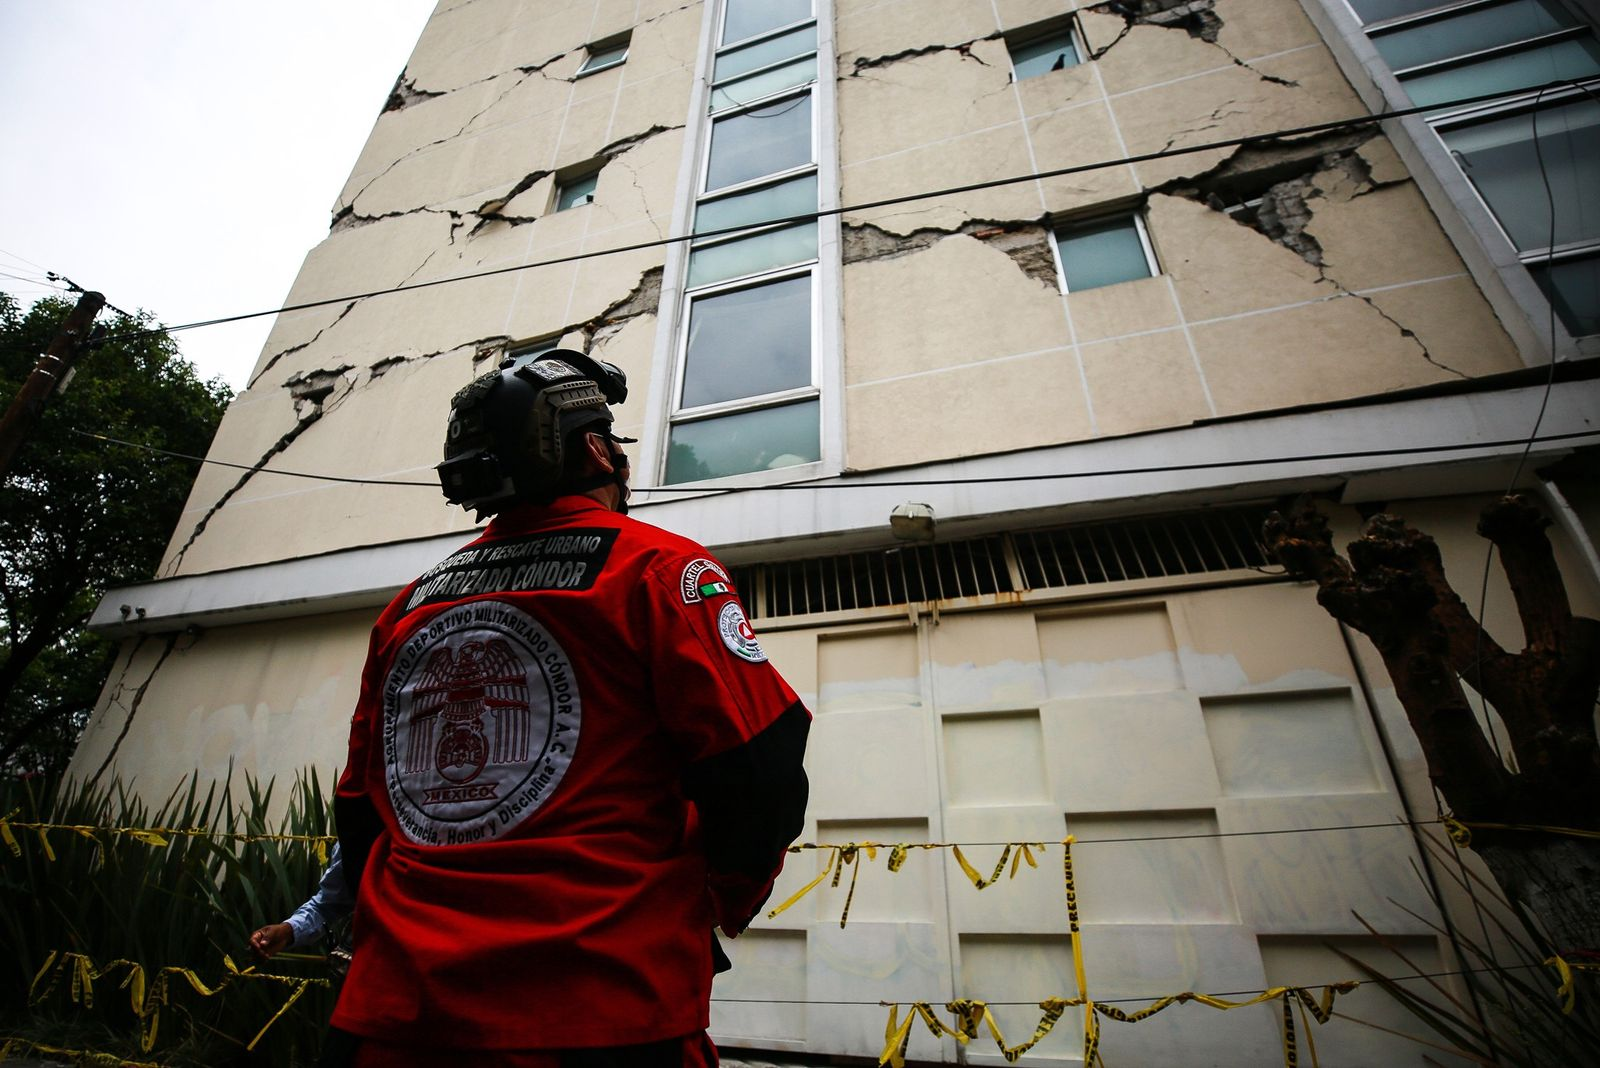 Why the Oaxaca earthquake made buildings sway hundreds of miles away